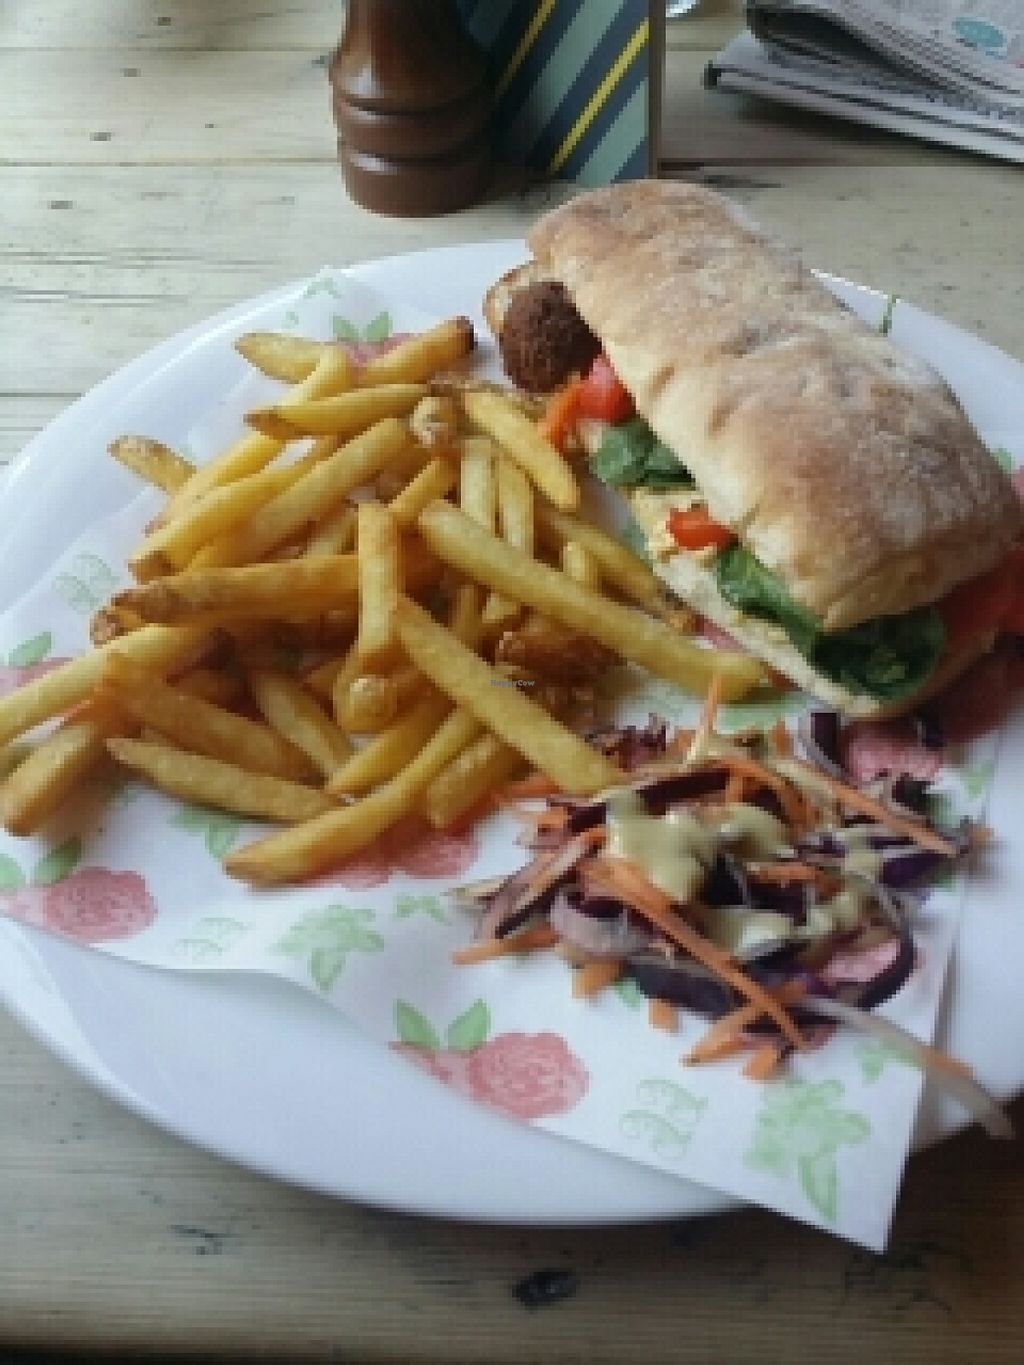 """Photo of The Cosy Club  by <a href=""""/members/profile/Tamono"""">Tamono</a> <br/>Vegan Falafel Sandwich <br/> April 13, 2016  - <a href='/contact/abuse/image/44123/144361'>Report</a>"""